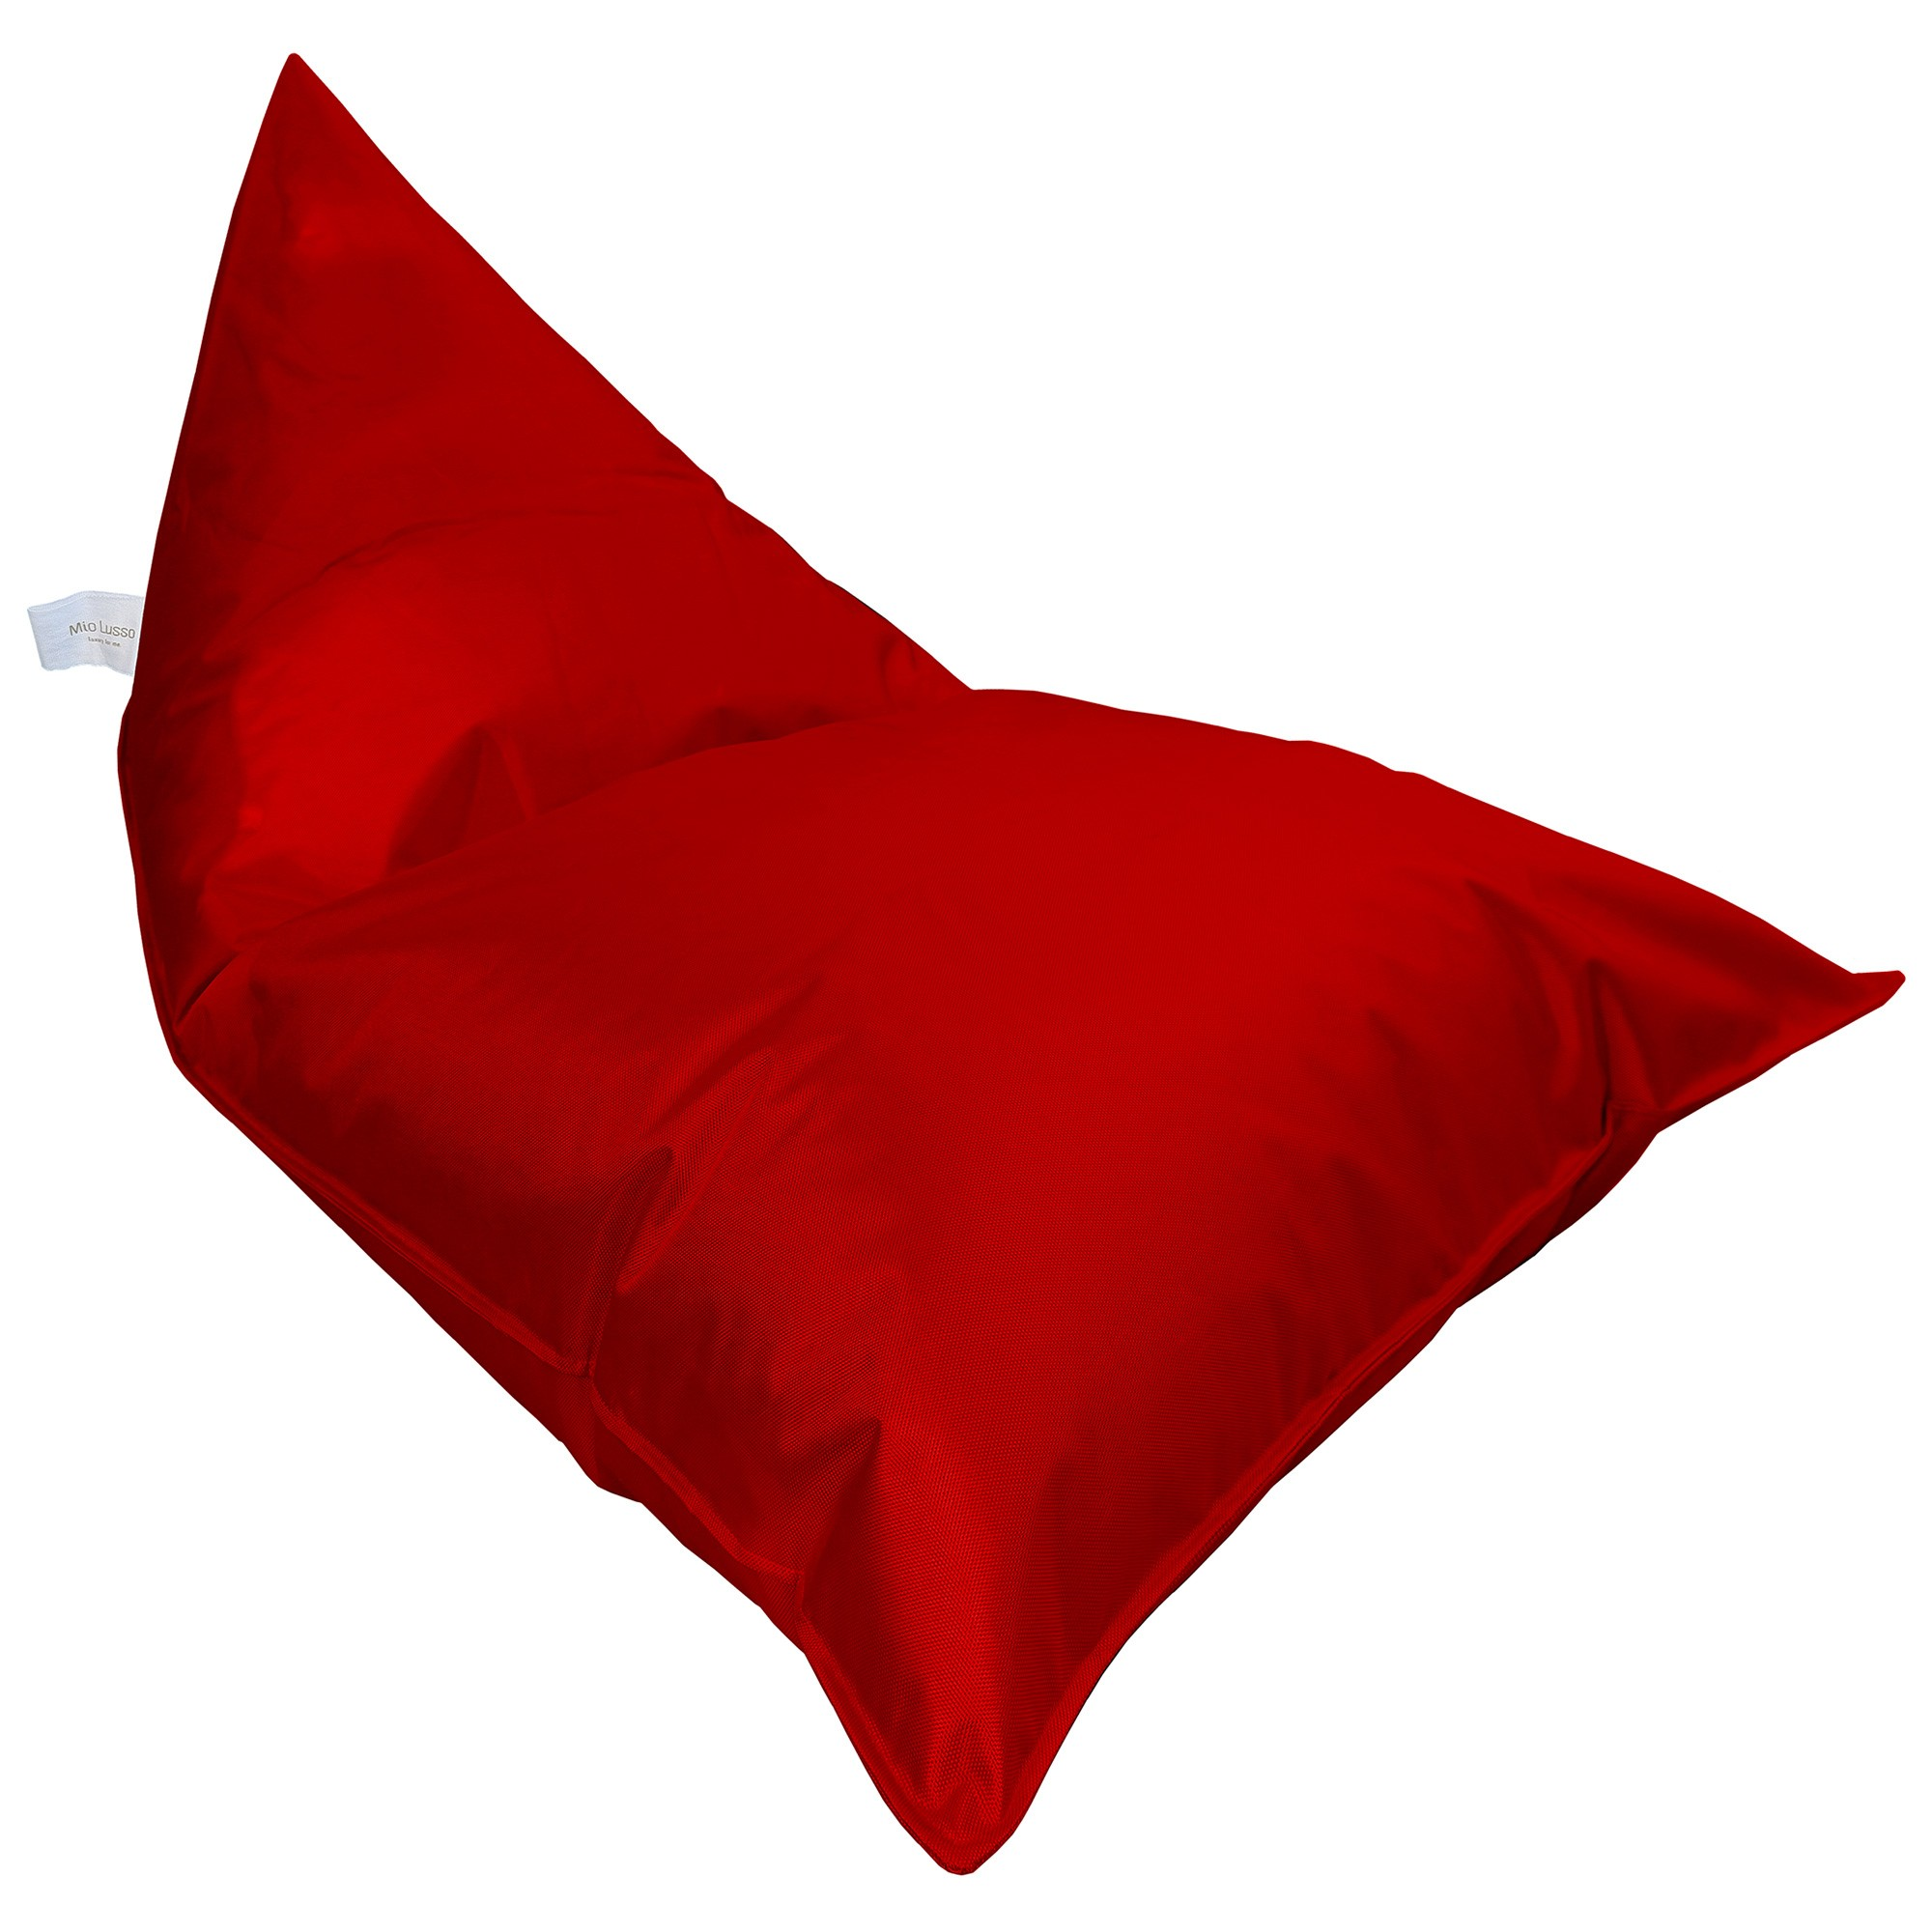 Malibu Fabric Indoor / Outdoor Bean Bag Cover, Red